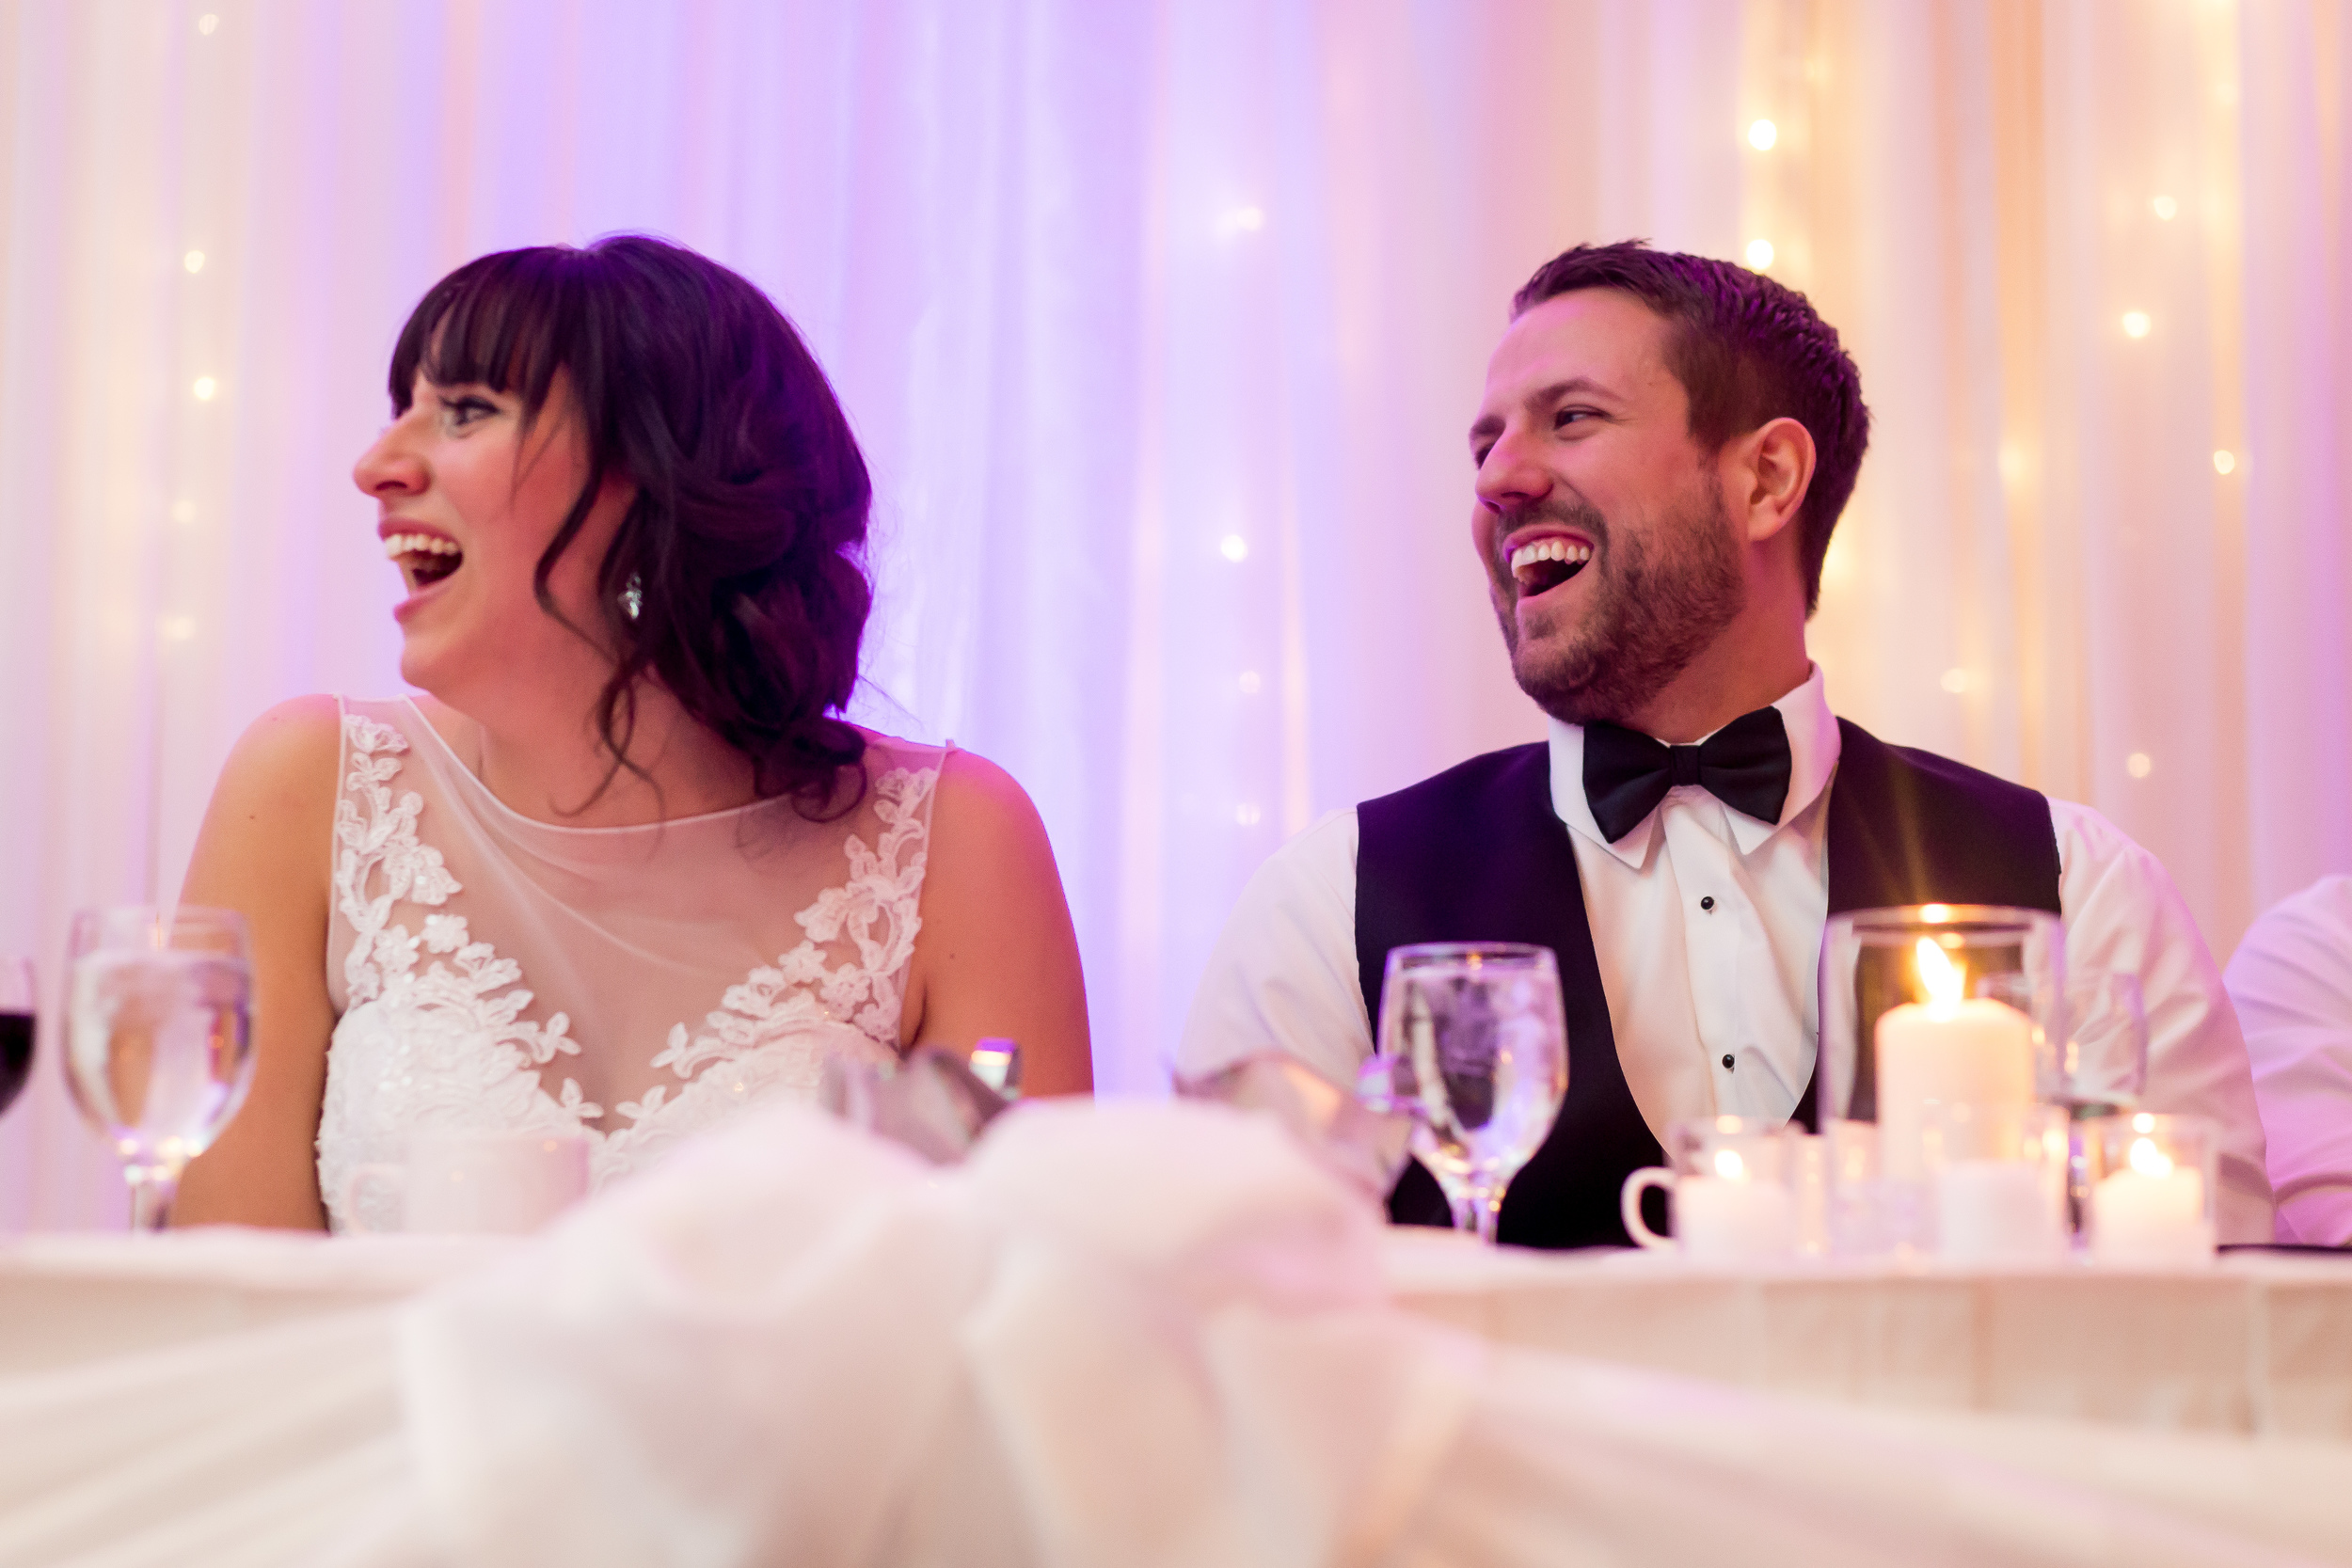 The bride and groom laughing during the speeches